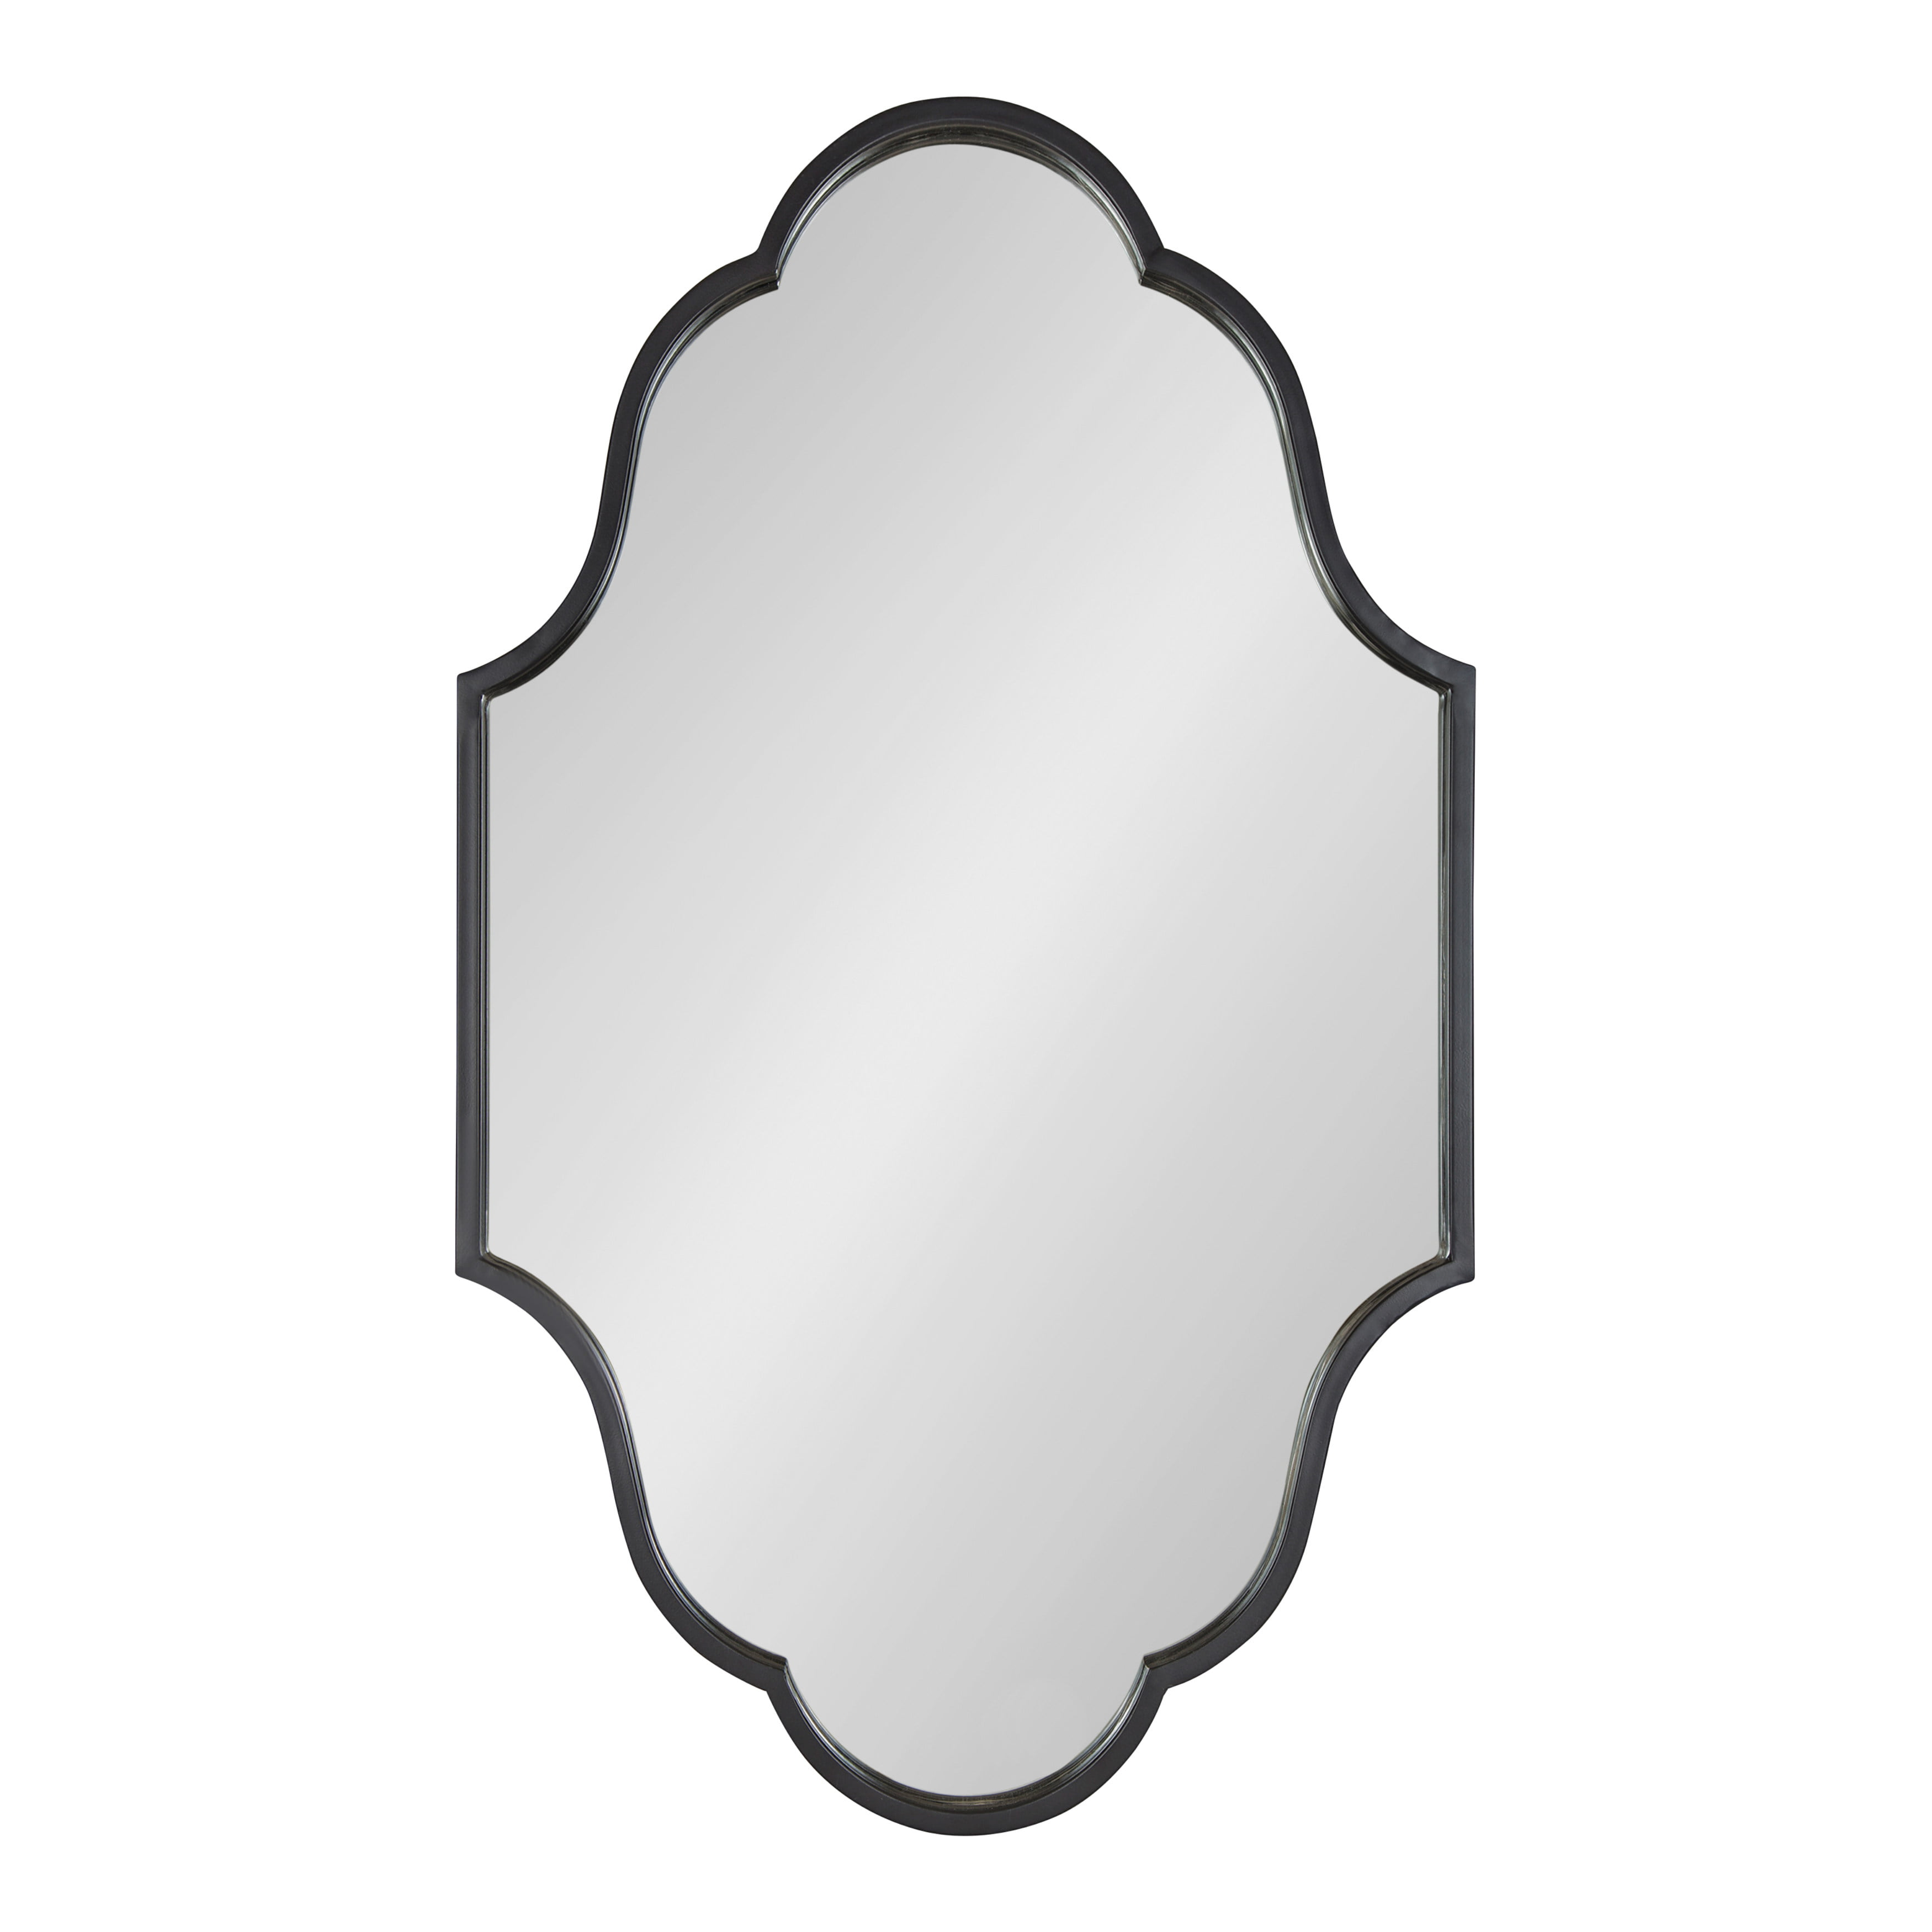 Kate And Laurel Rowla Glam Scalloped Wall Mirror 23 X 37 Black Chic Sophisticated Accent Mirror For Decor Or Bathroom Vanity Walmart Com Walmart Com